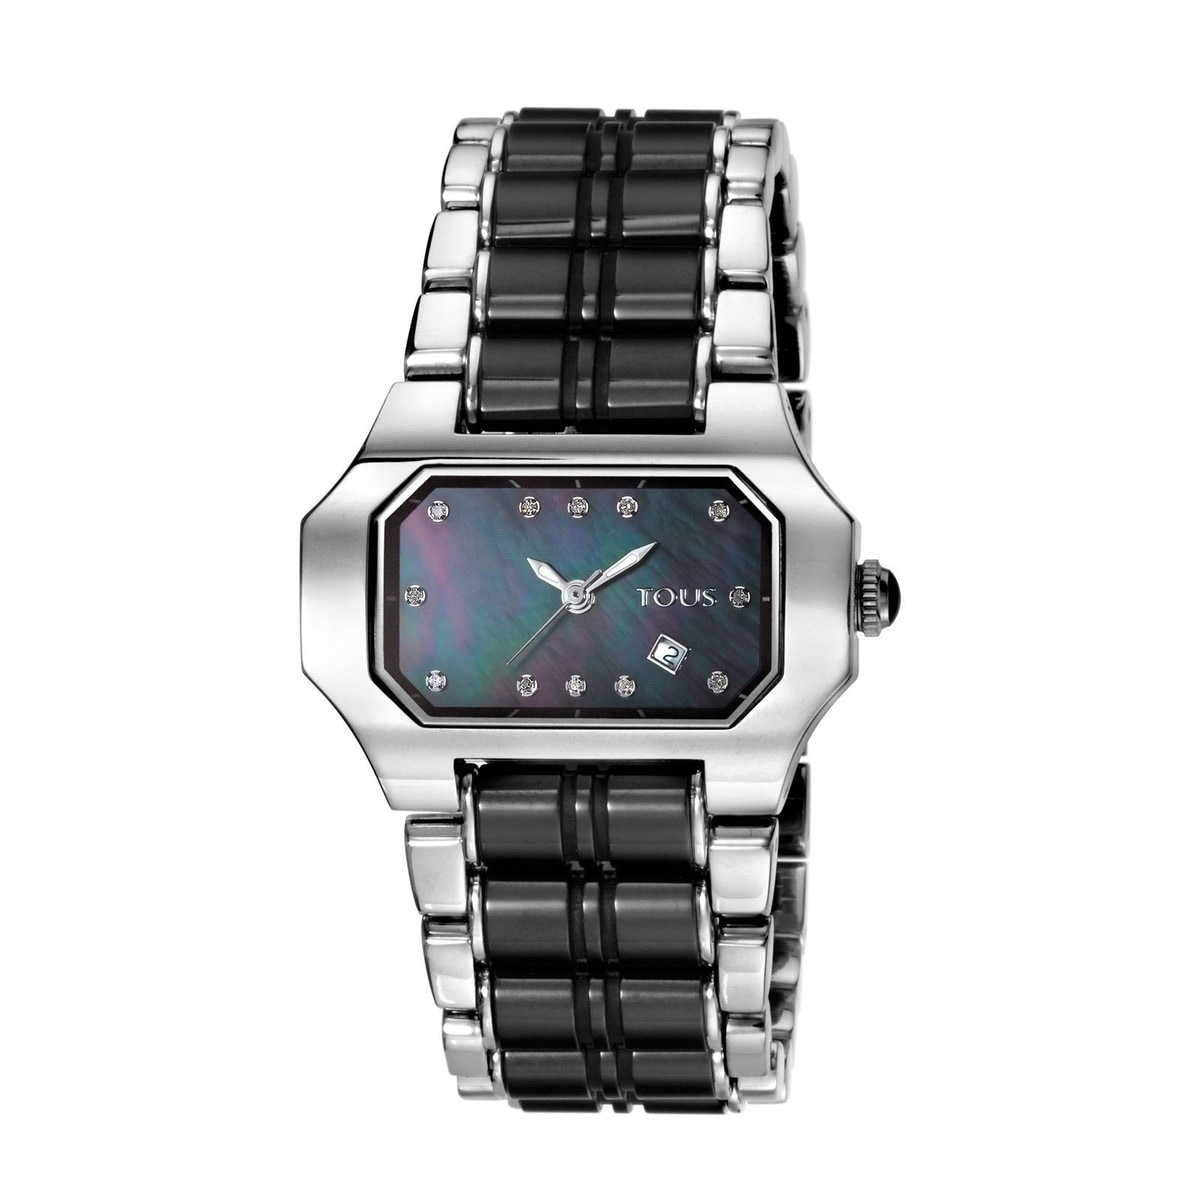 Steel Bel-air Watch with Diamonds